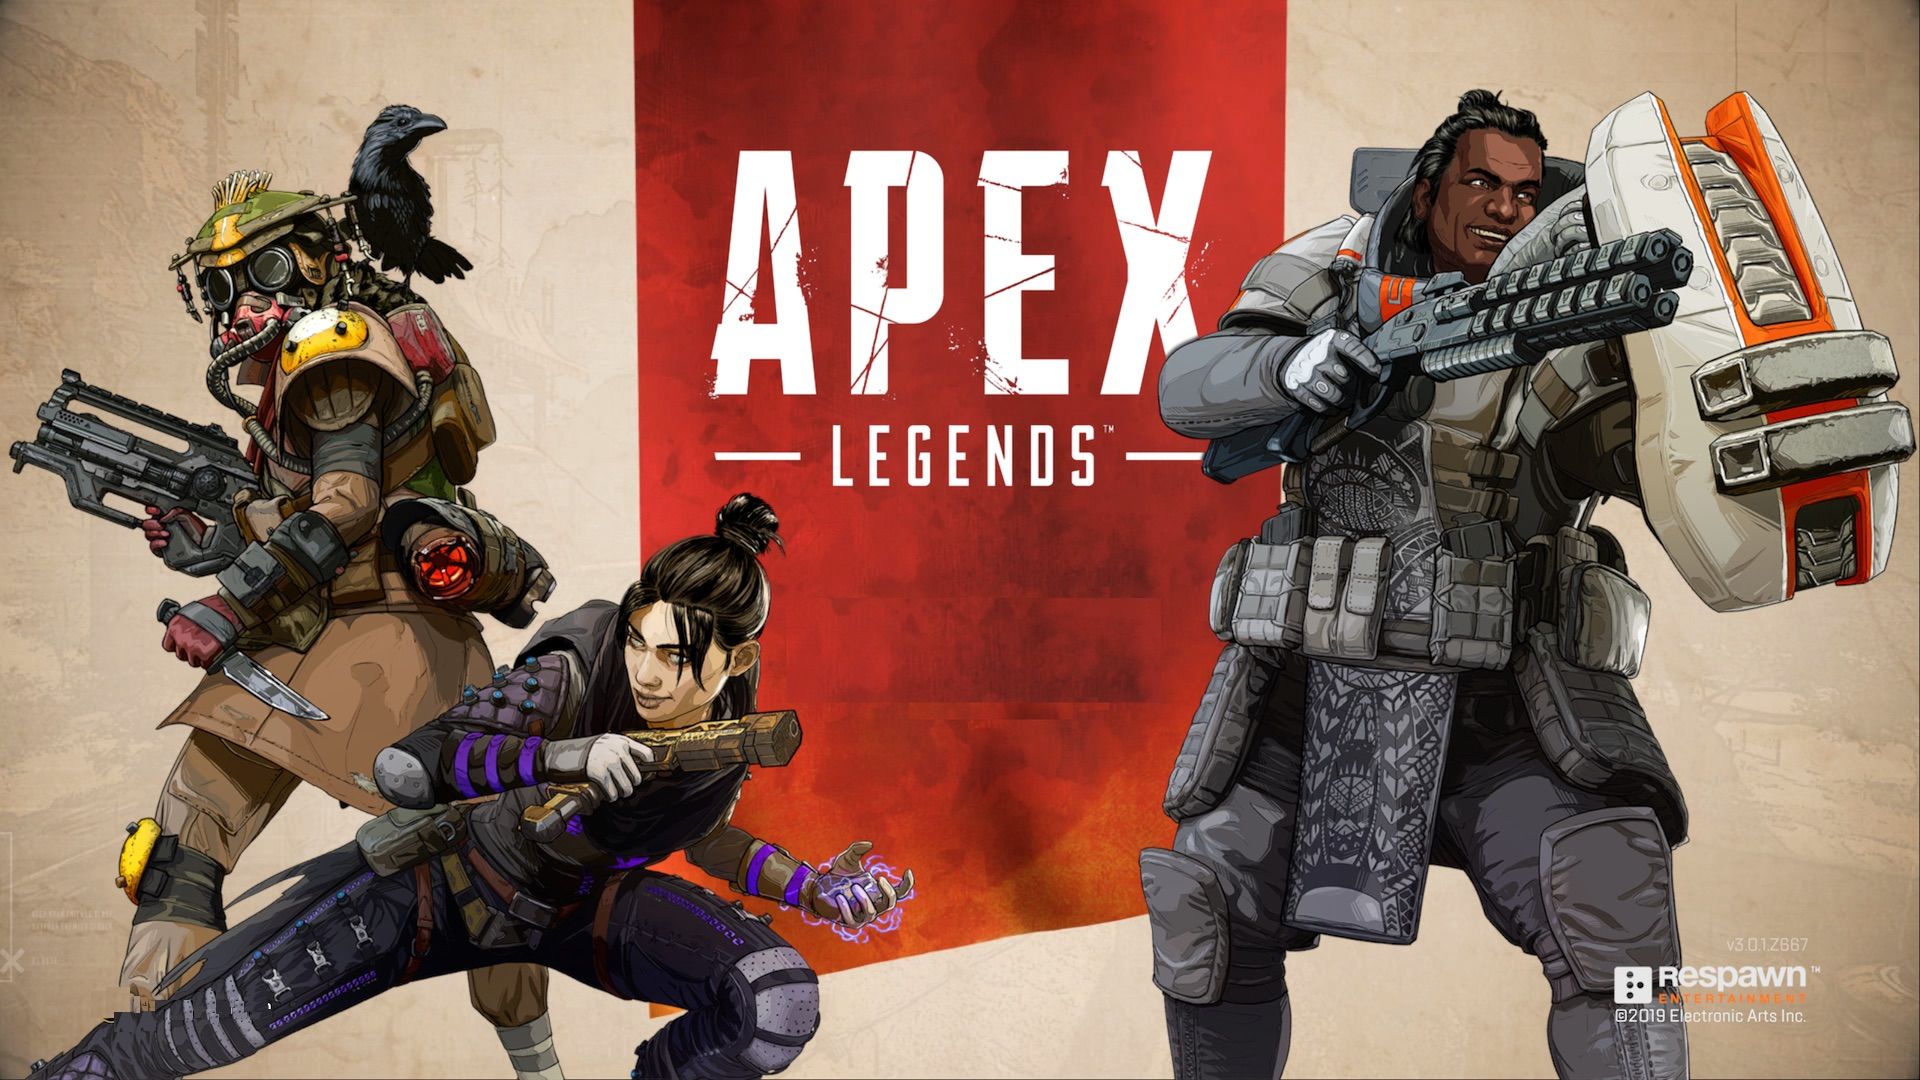 Apex Legends attracts 50 million players, gains ground on Fortnite